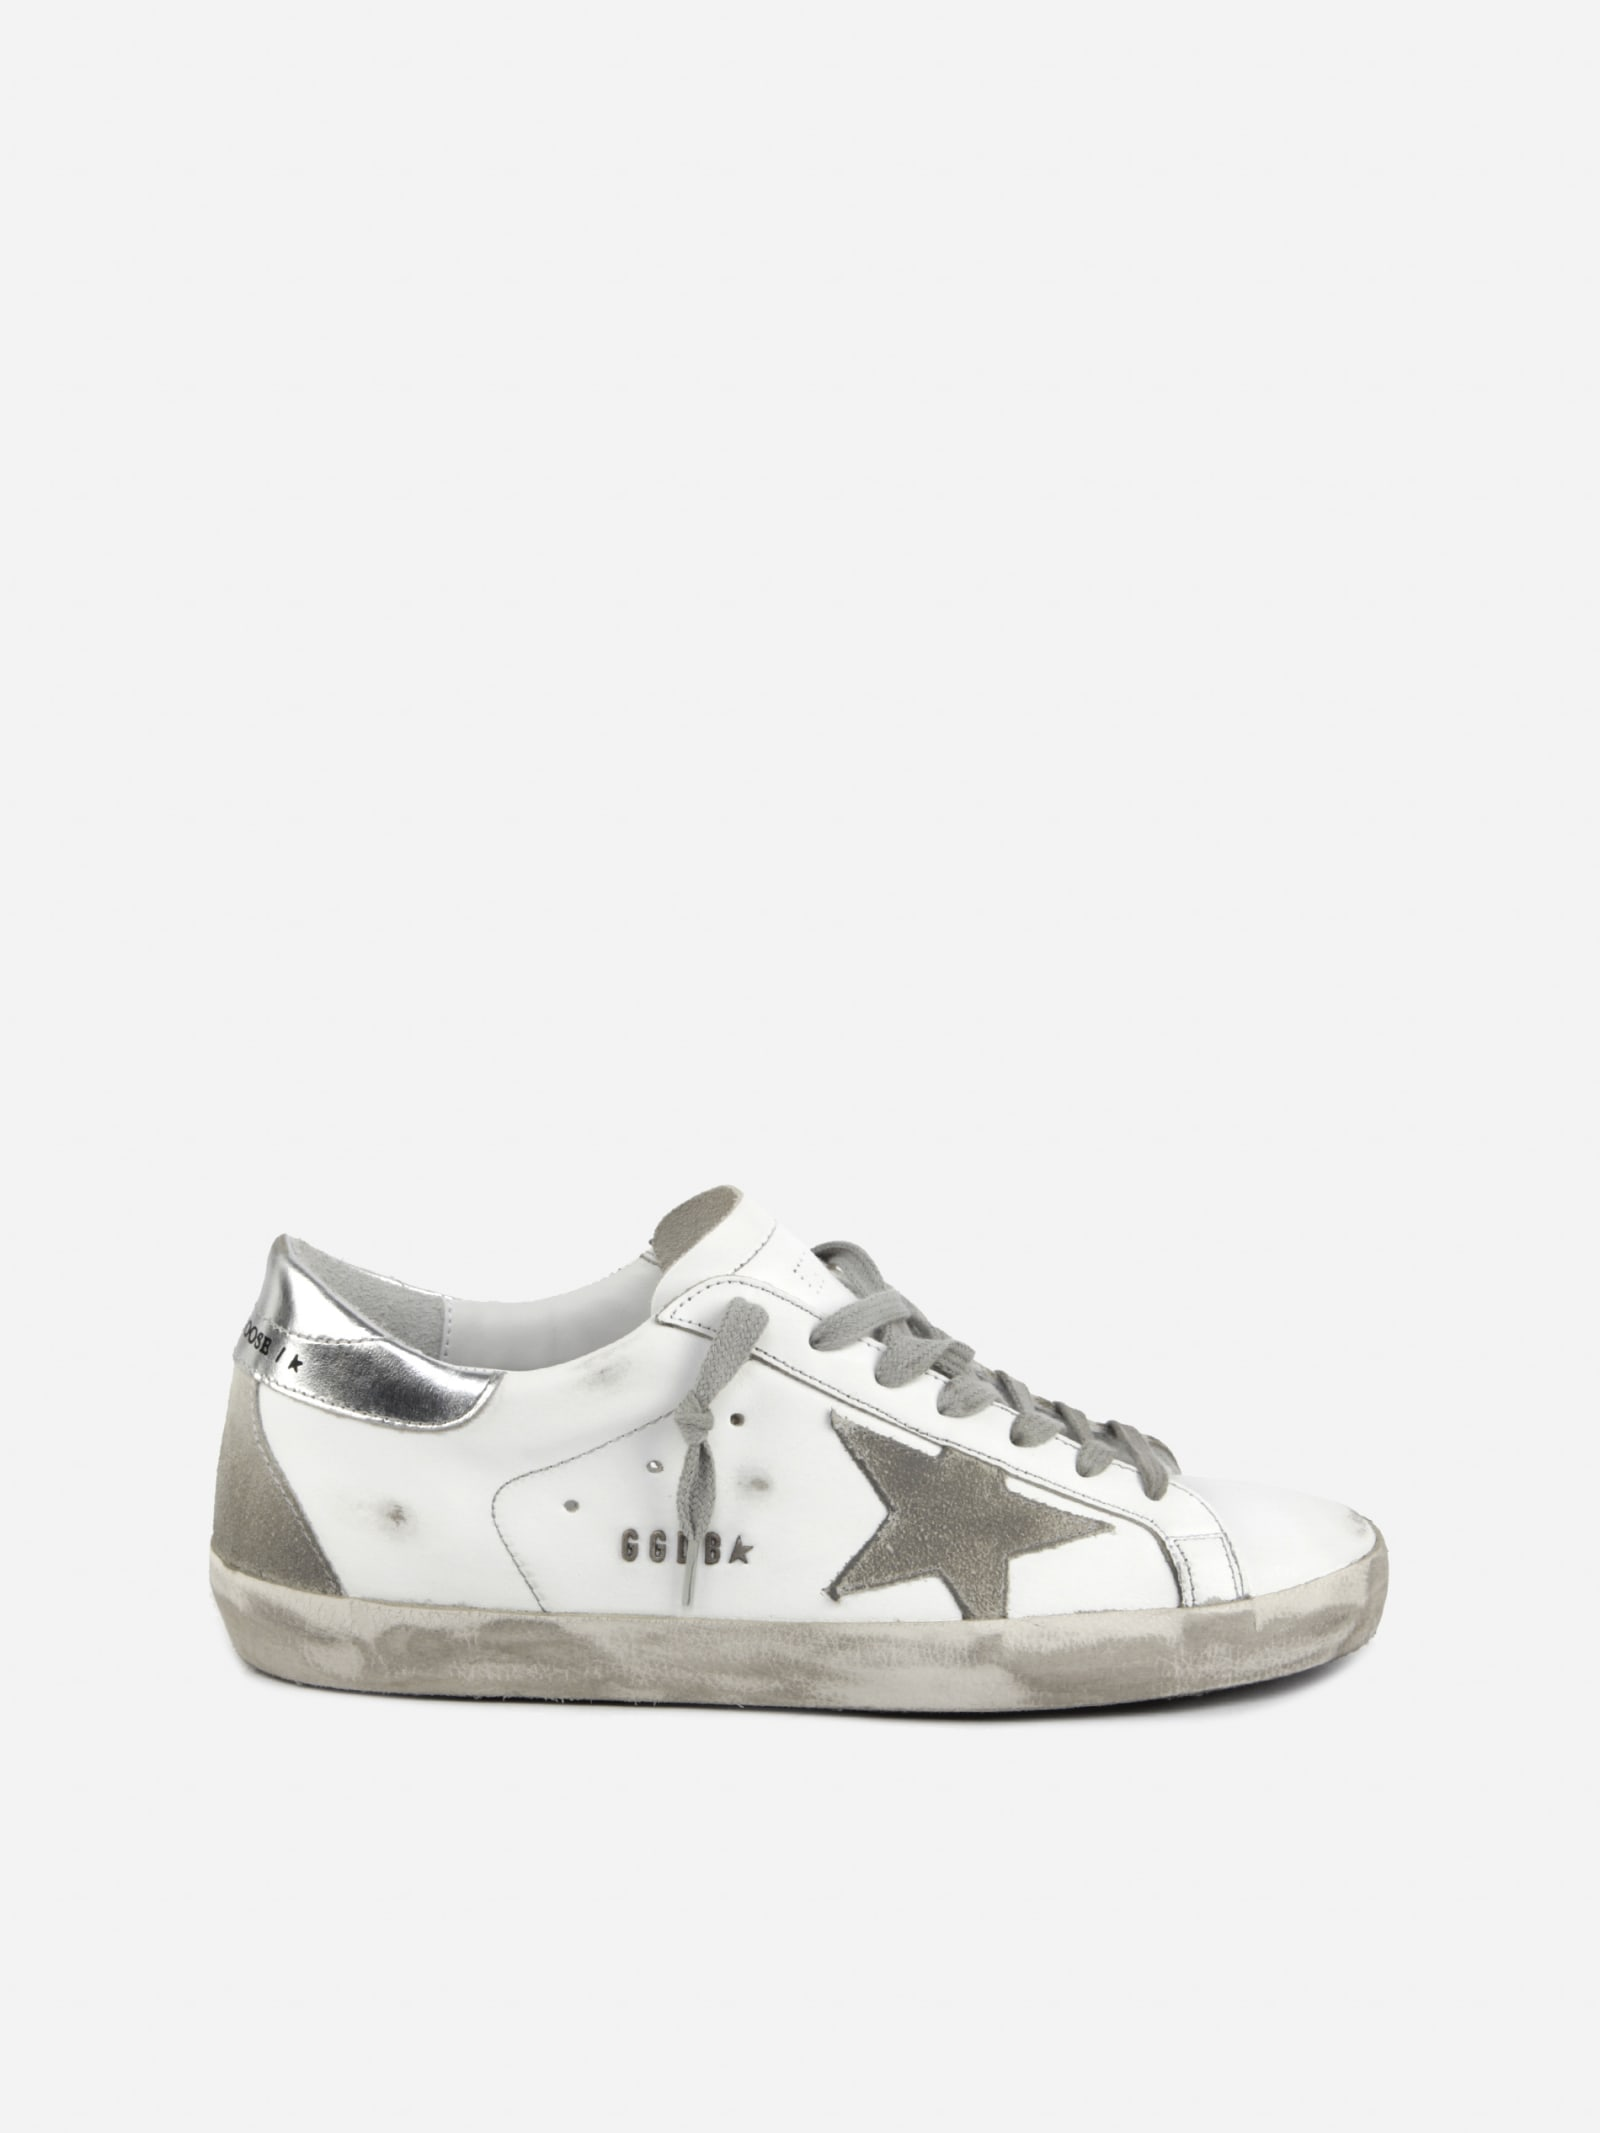 Golden Goose Superstar Sneakers In Leather With Suede Details